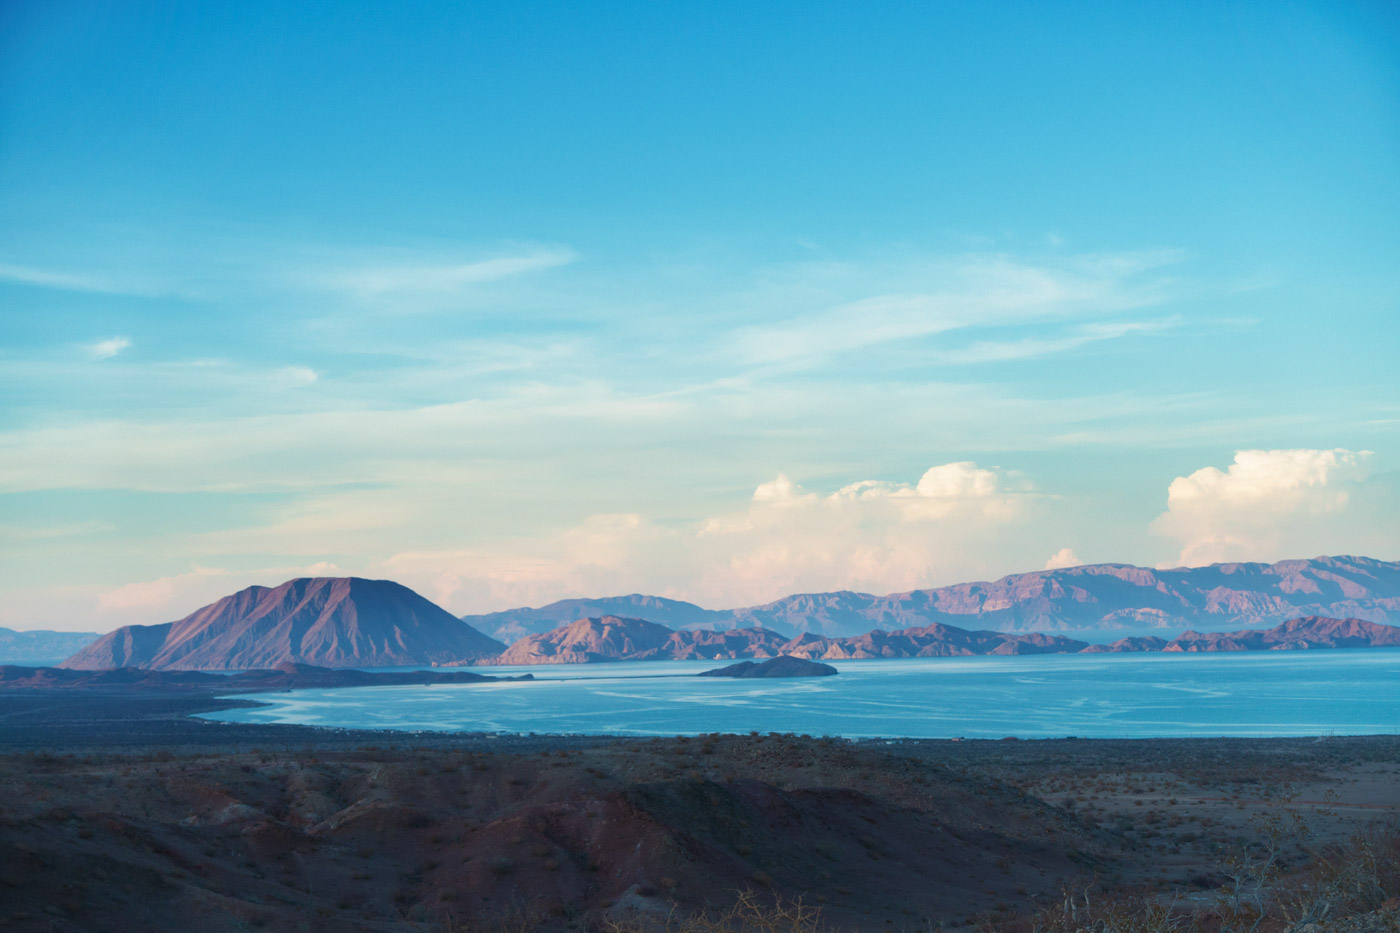 The Sea of Cortez near Bahia de Los Angeles, 2014